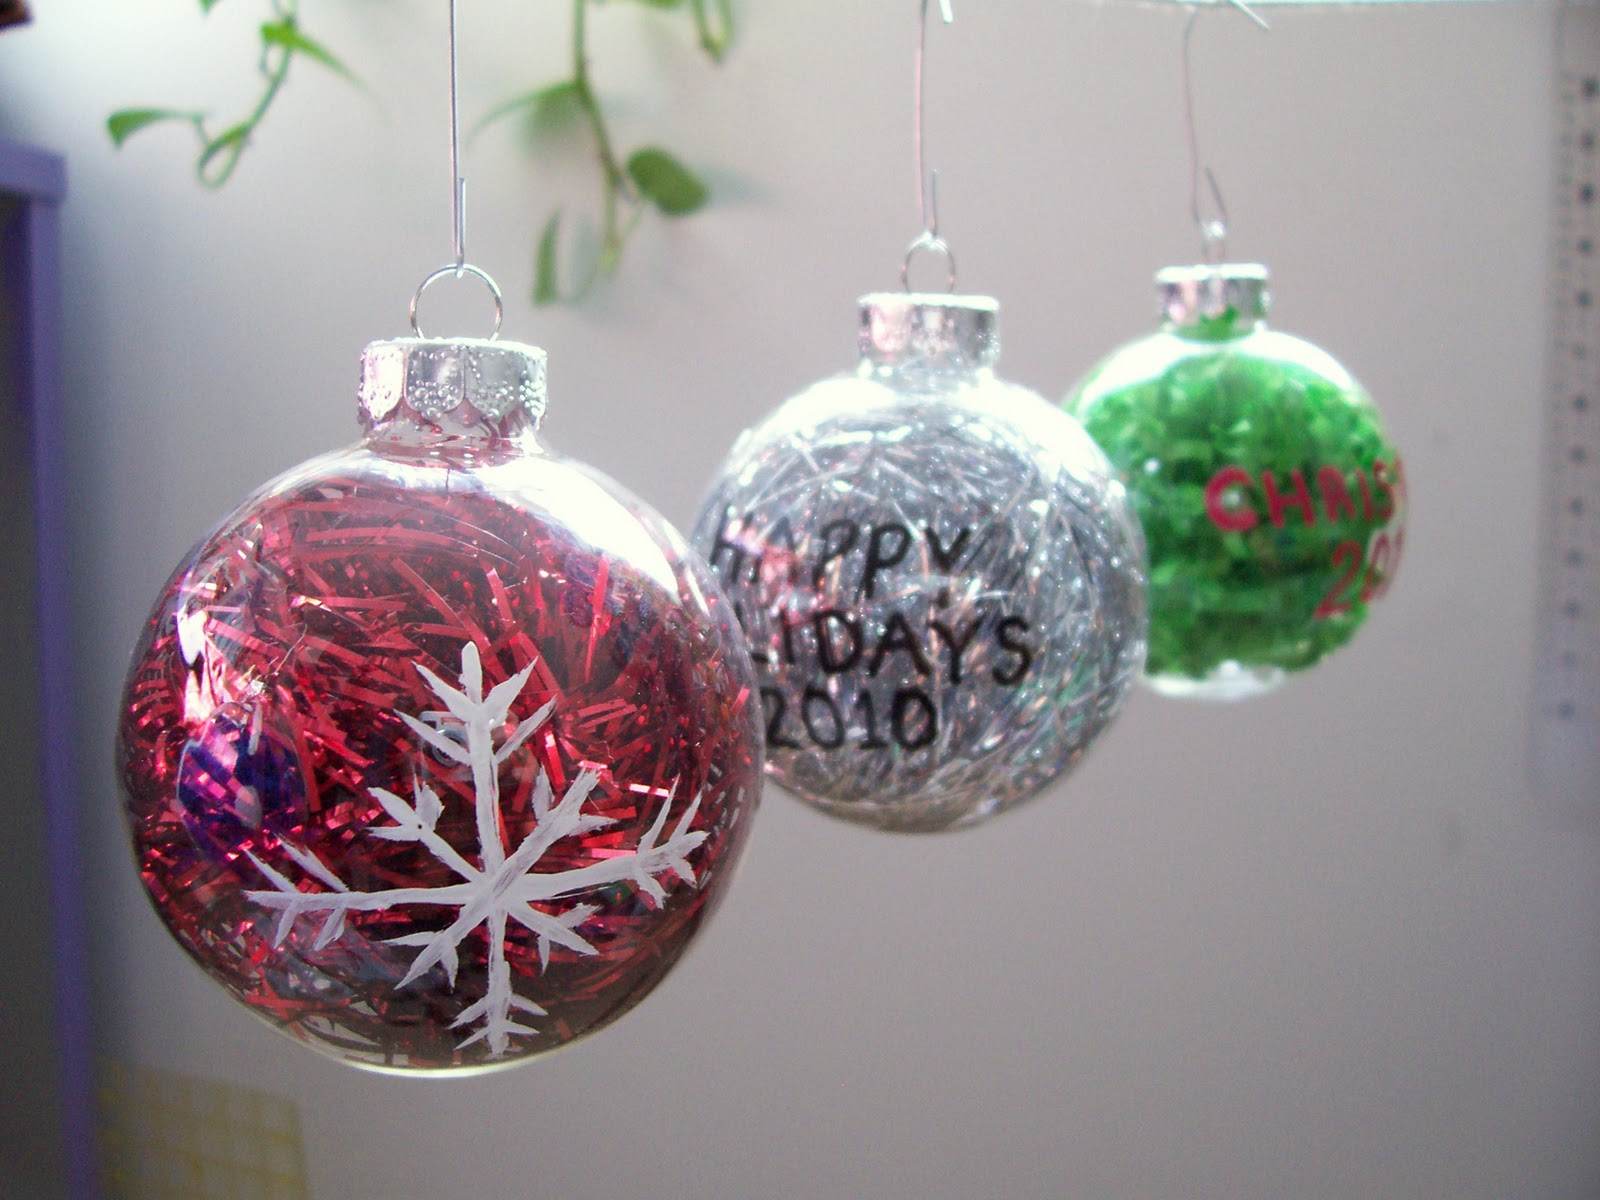 Homemade Christmas Ornaments - Make Craft Projects, Holiday Crafts